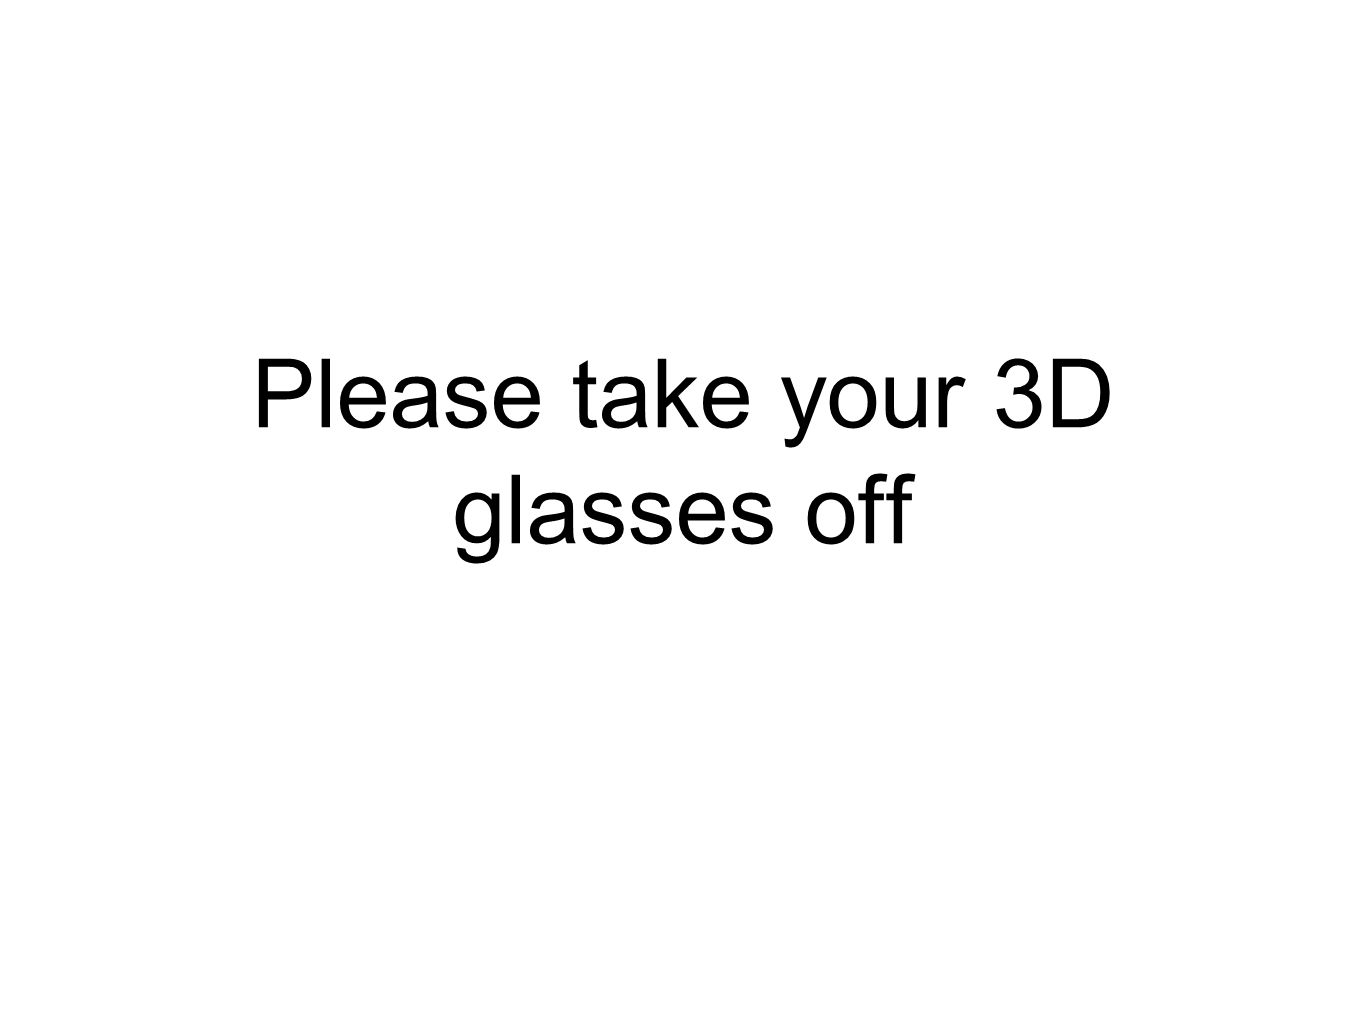 Please take your 3D glasses off